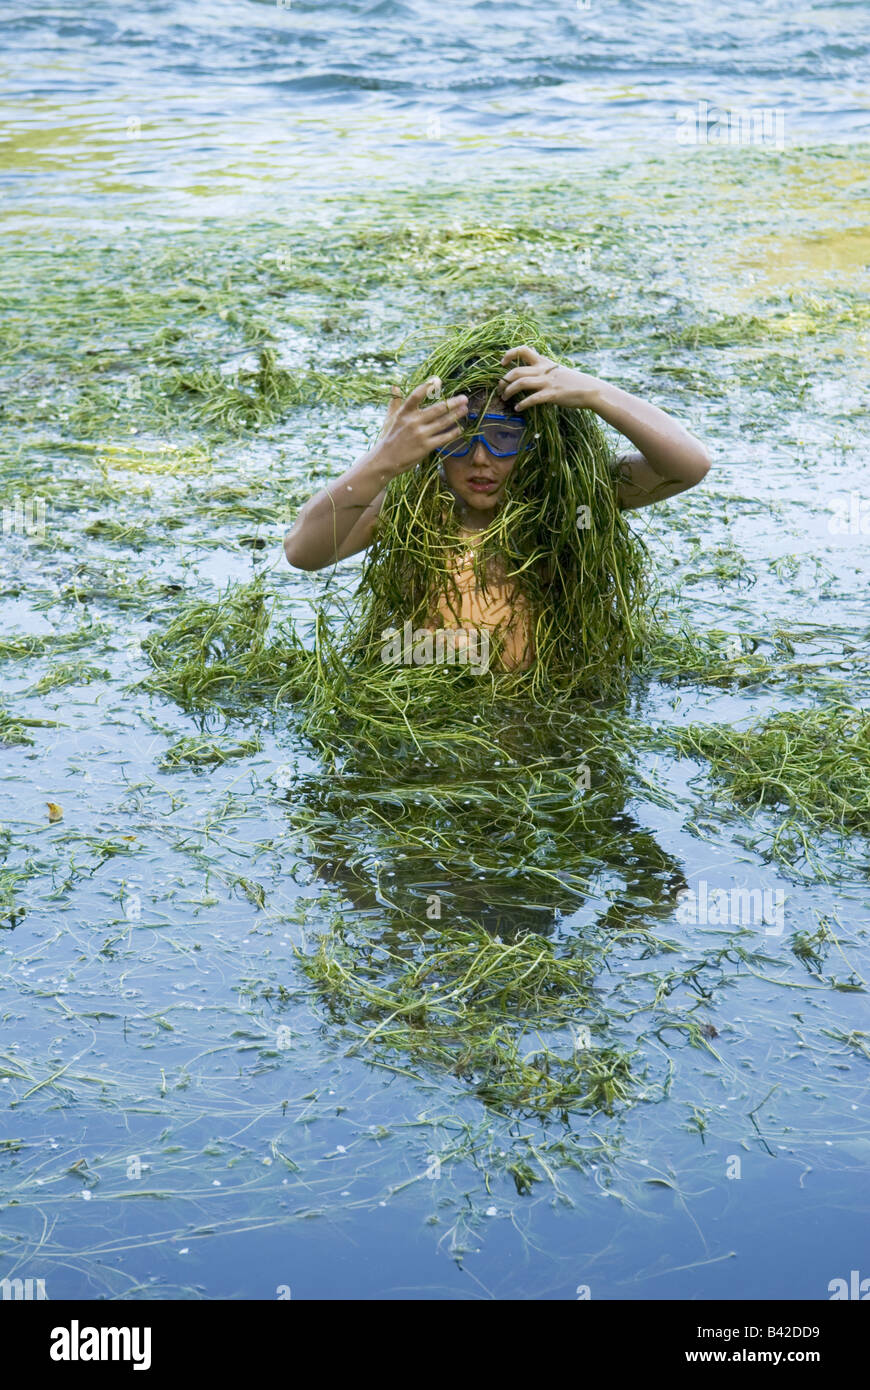 a young boy up to his waist in river covers himself in weed during a game - Stock Image